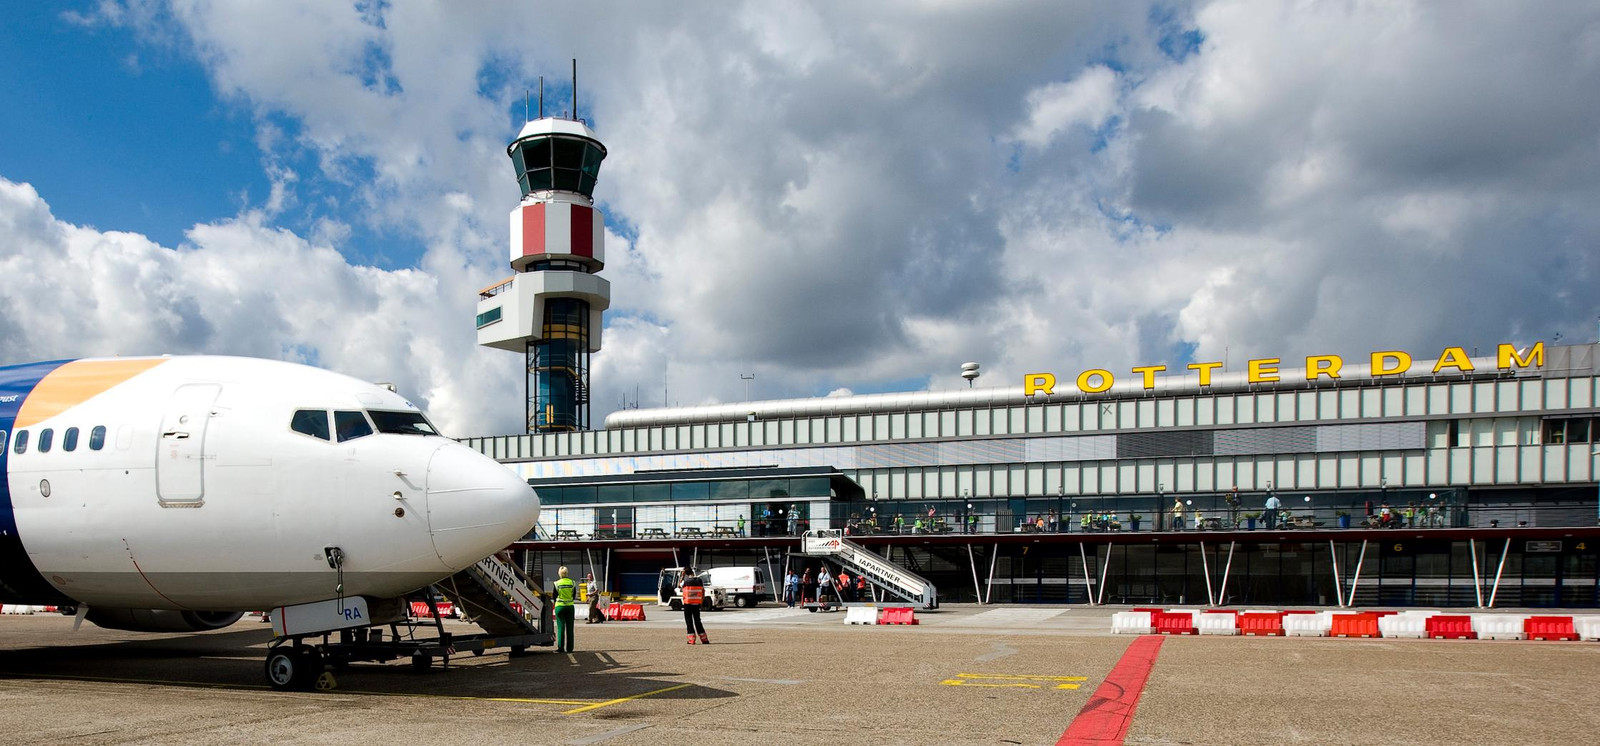 Rotterdam airport for Jet cars rotterdam opgelicht